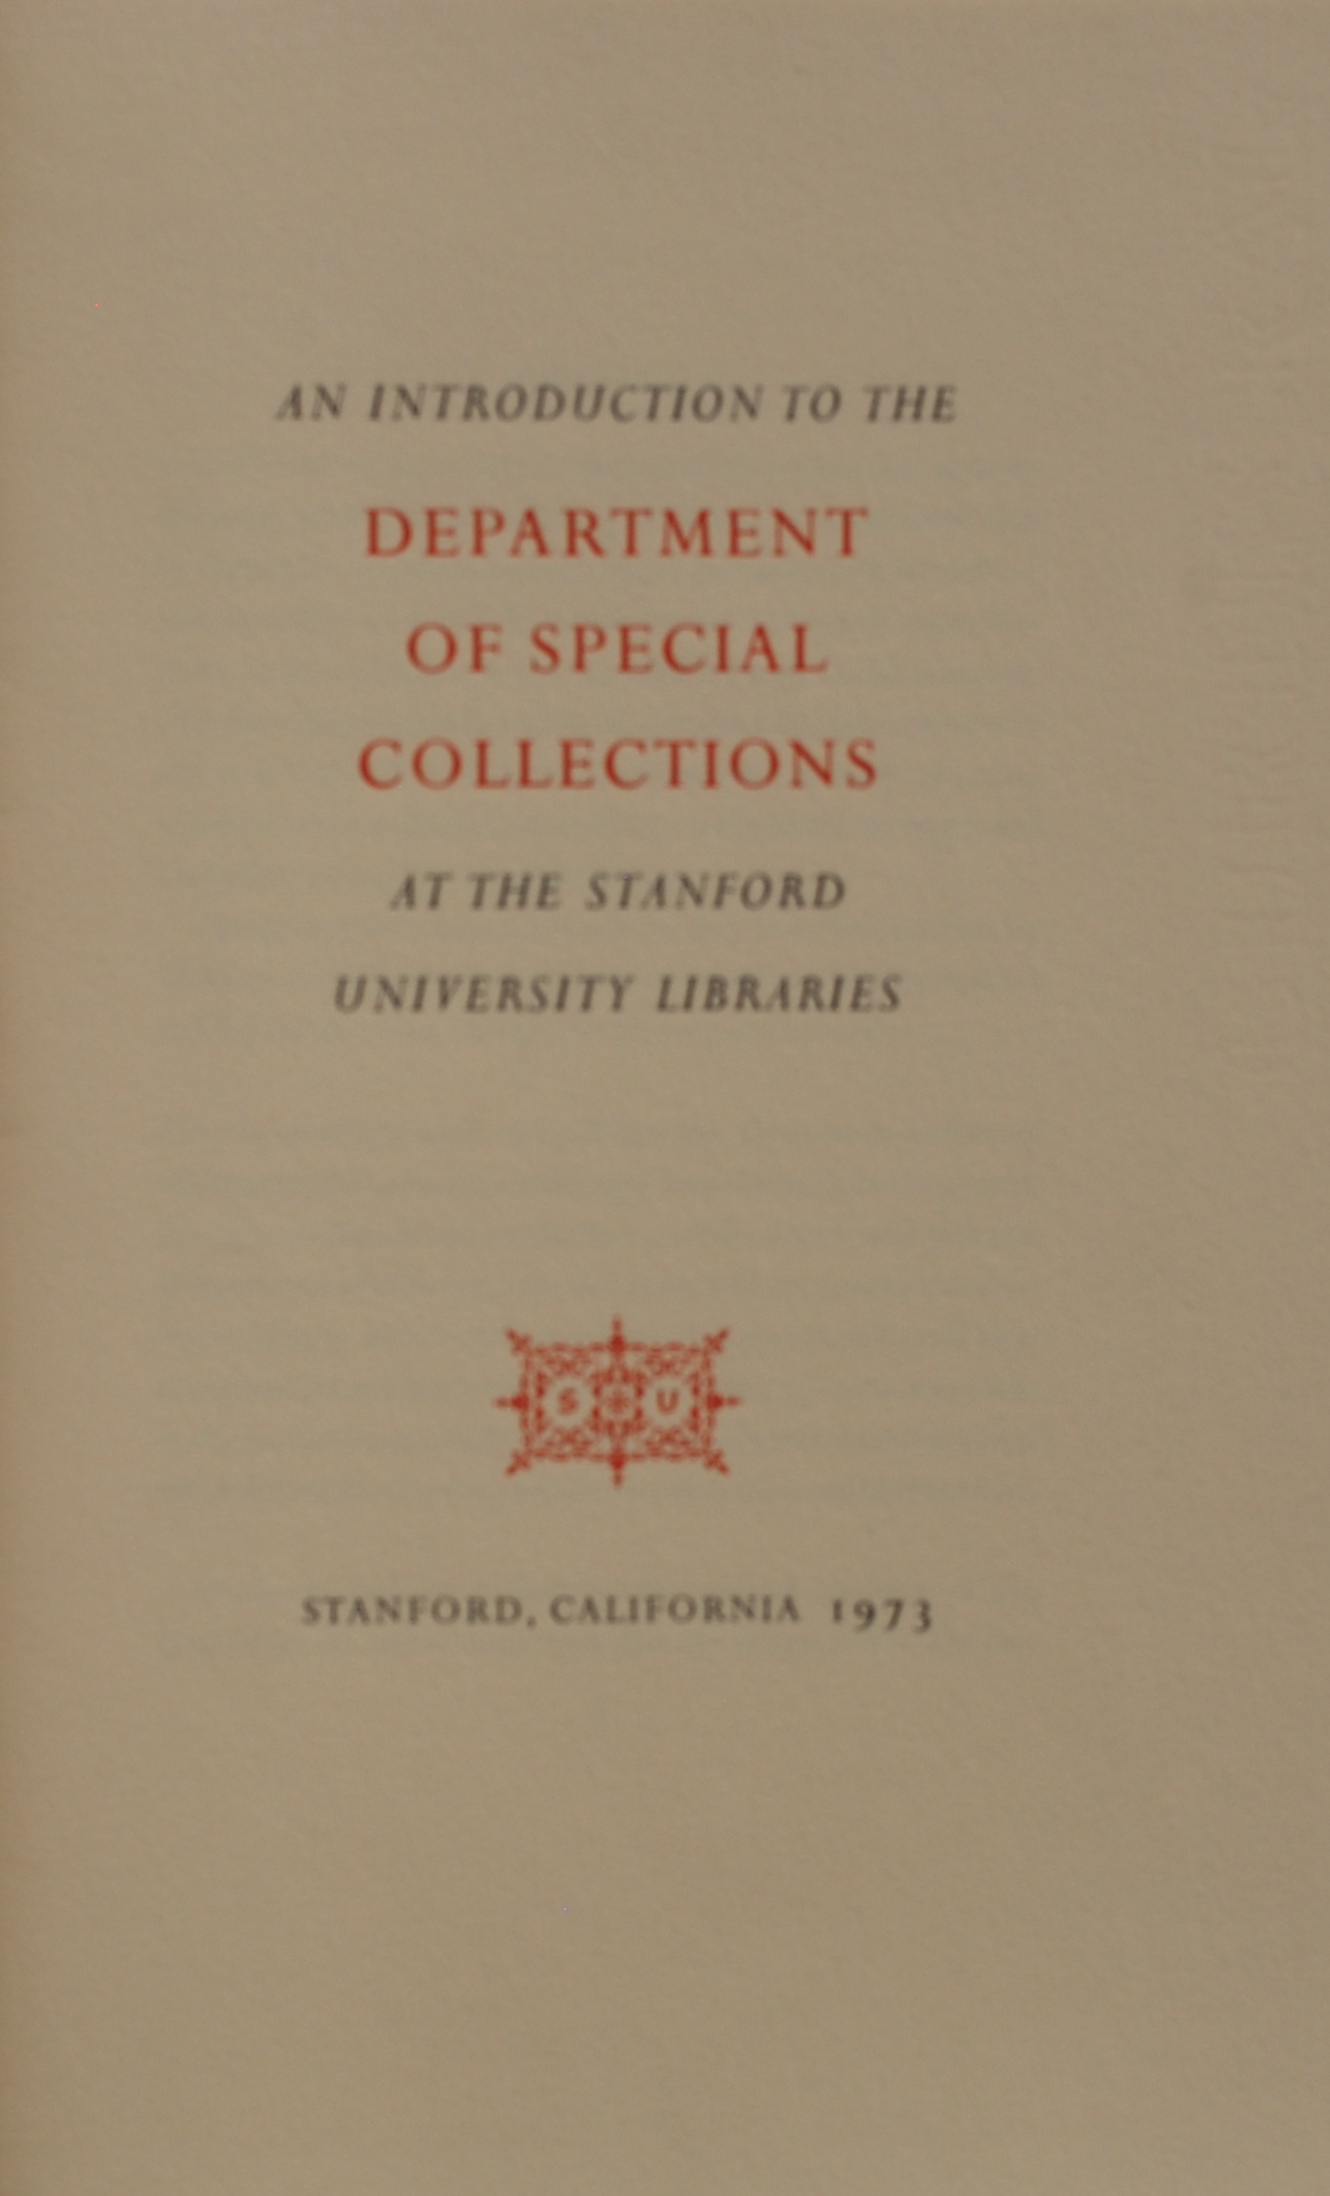 Image for An Introduction to the Department of Special Collections at the Stanford University Libraries.